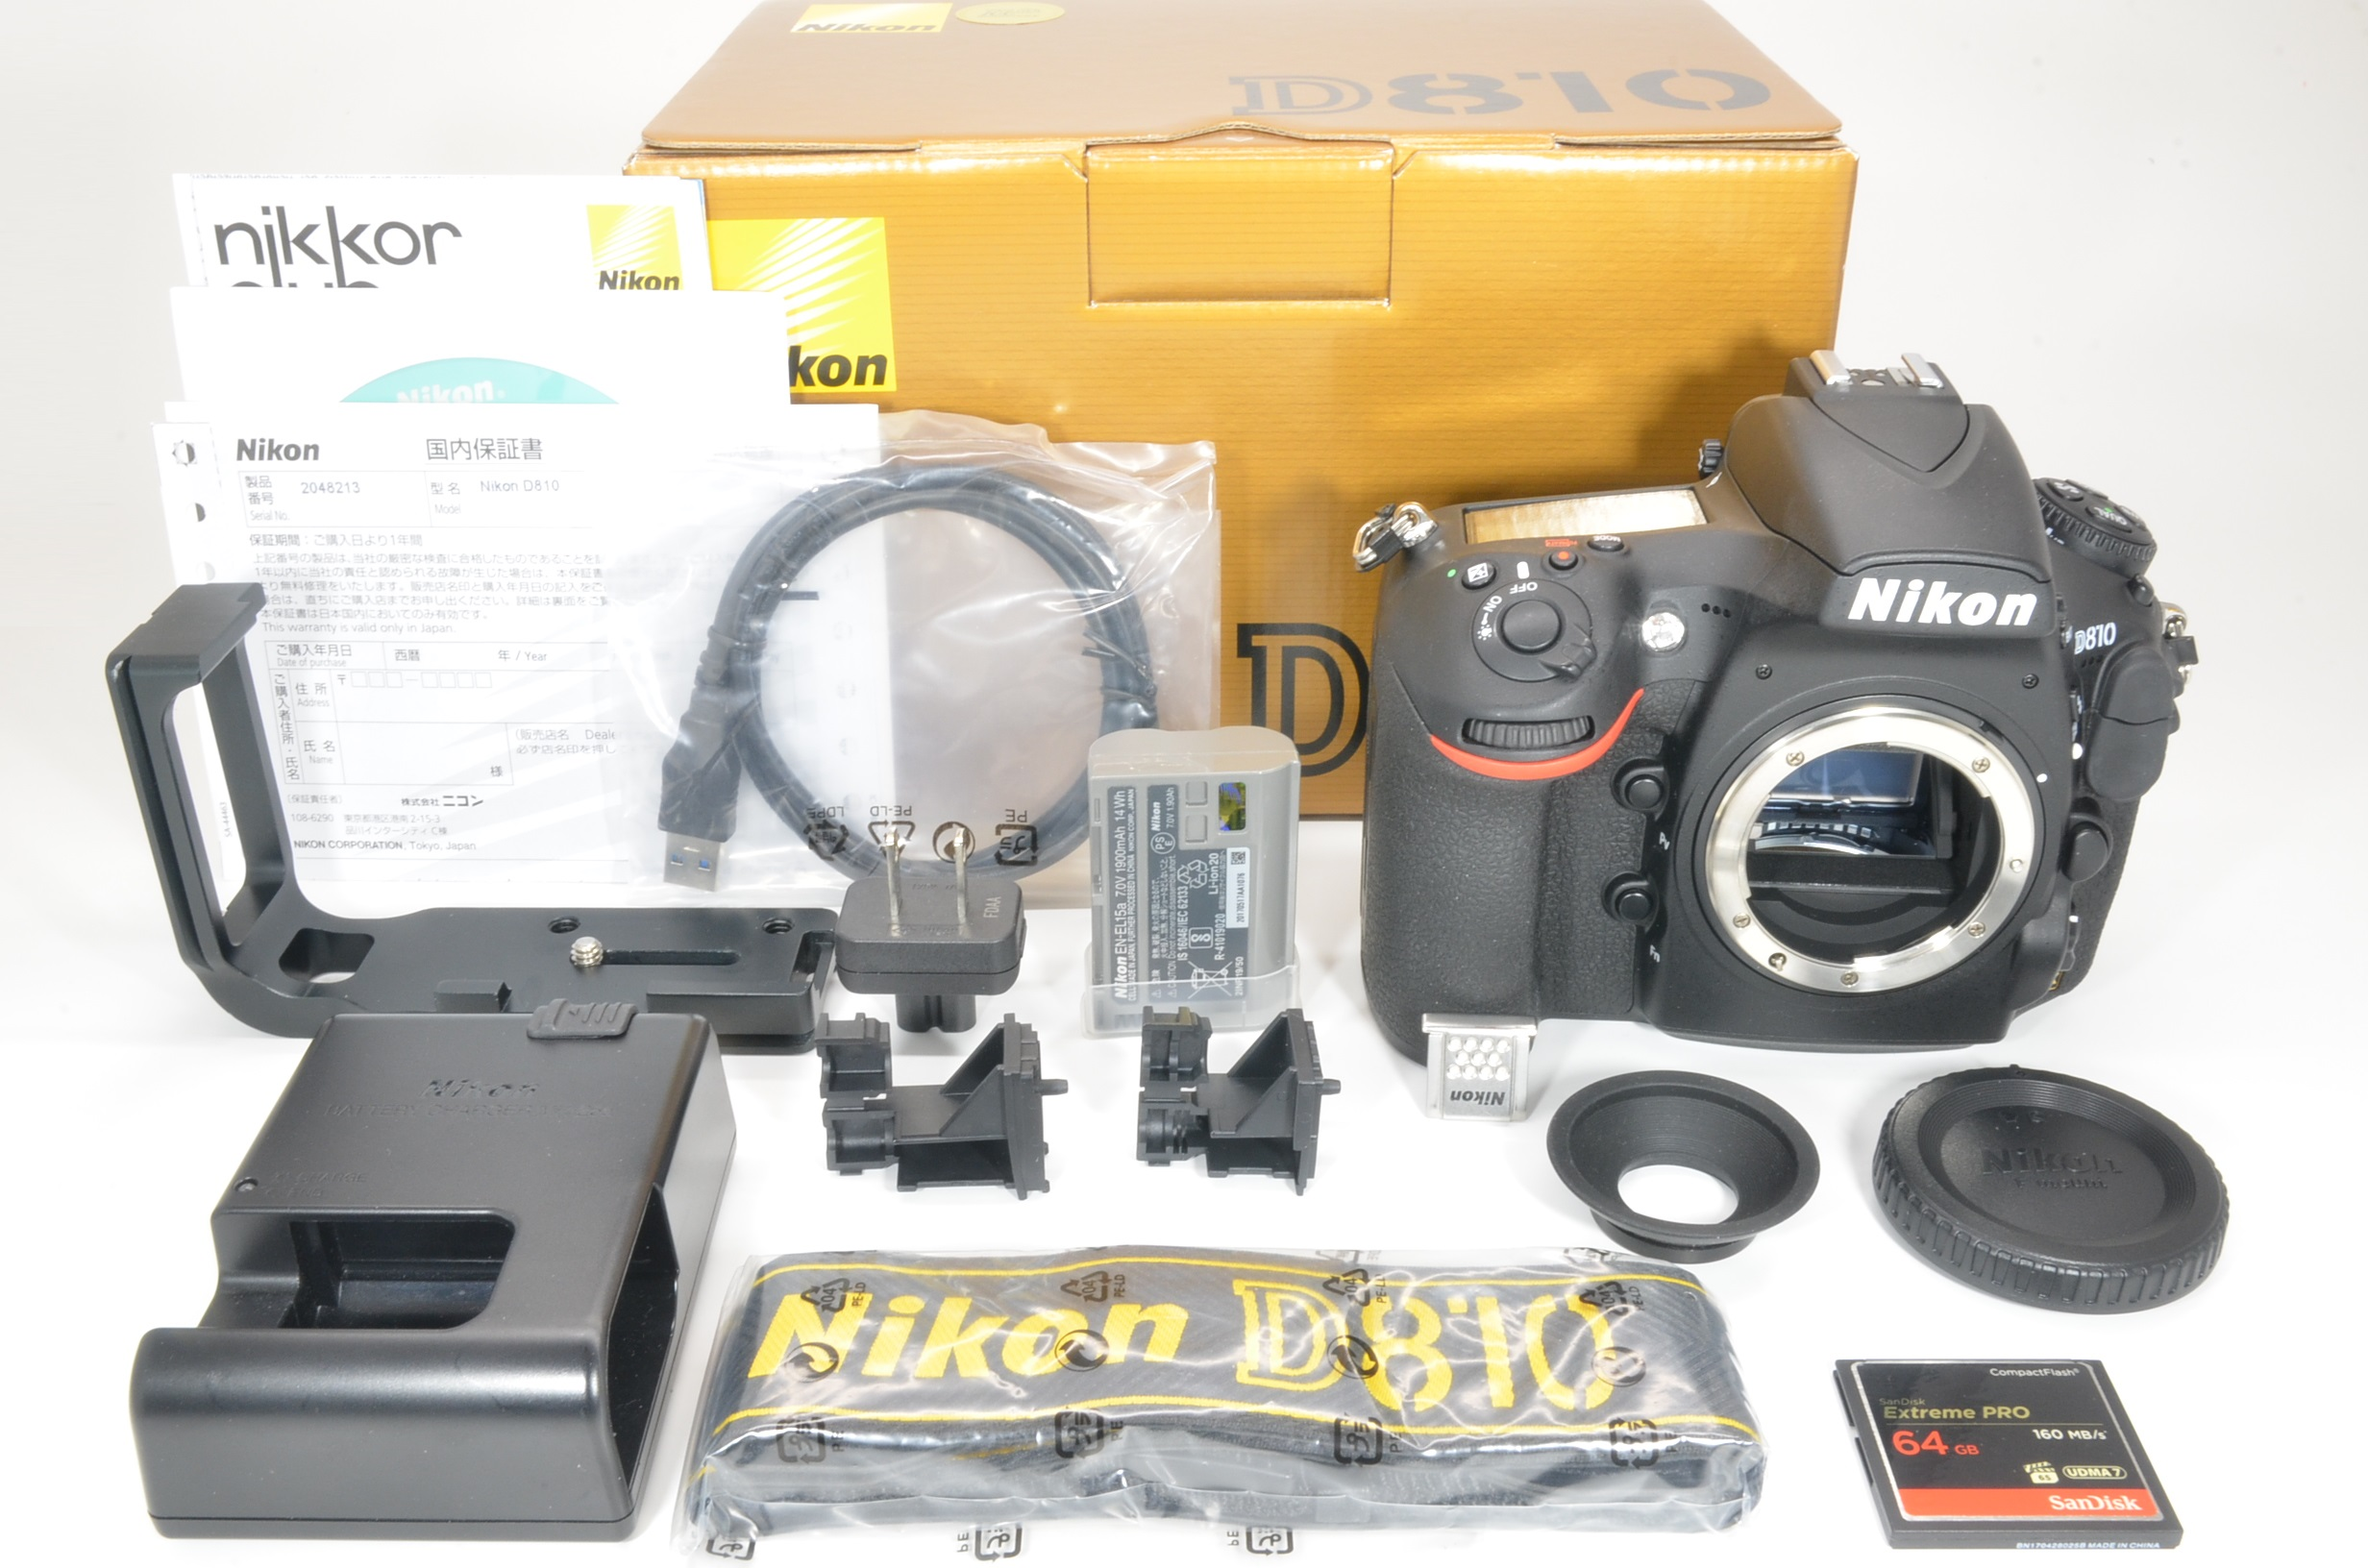 nikon d810 36.3mp digital slr camera with l plate and 64gb cf card